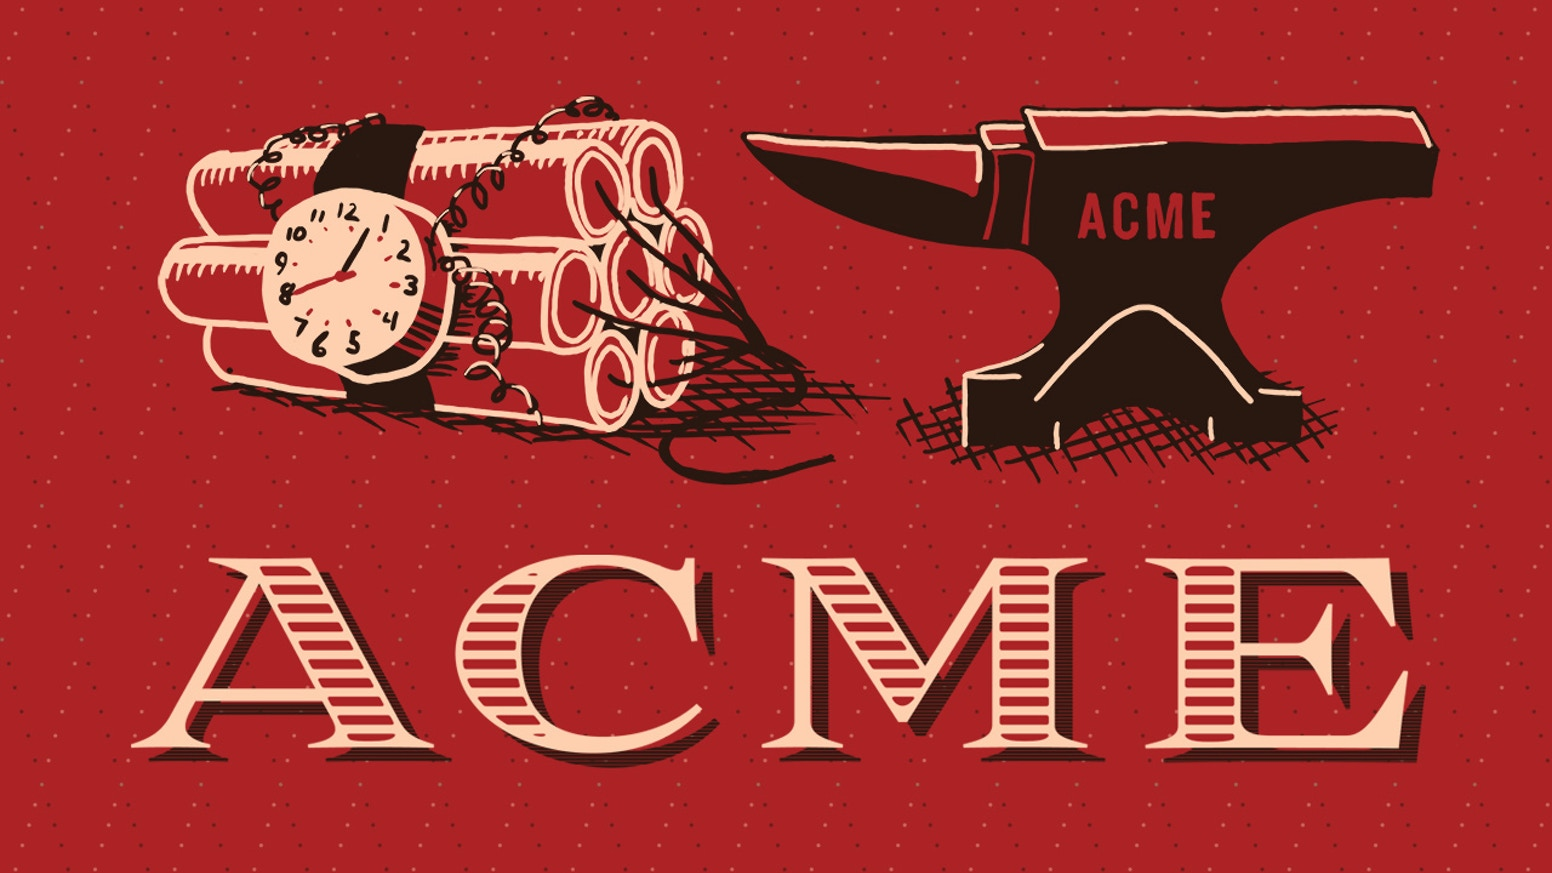 Acme dating chat line